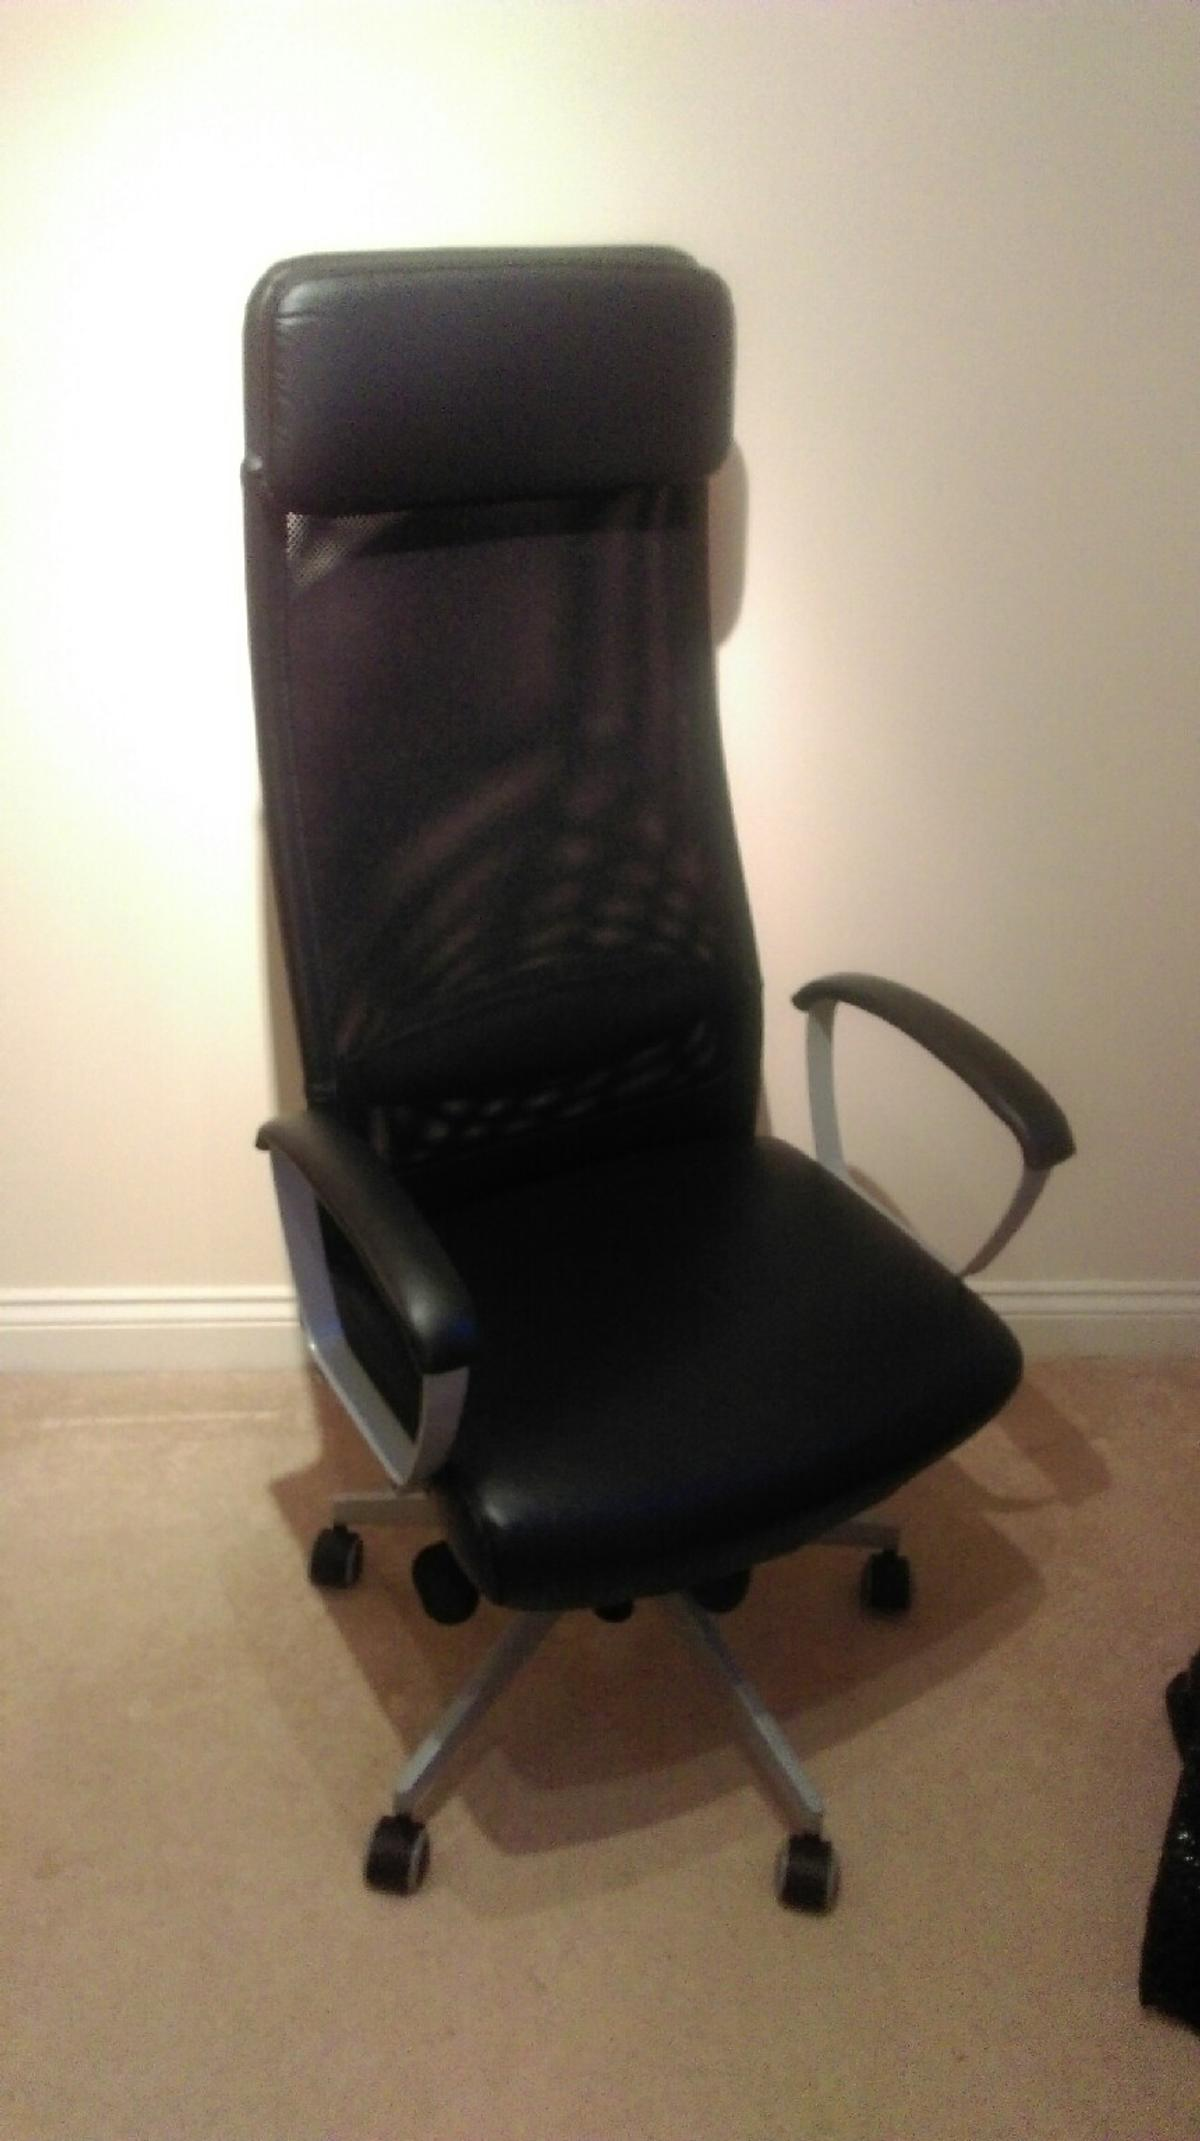 Ikea Markus Office Chair In Rh1 Banstead For 7500 For Sale Shpock